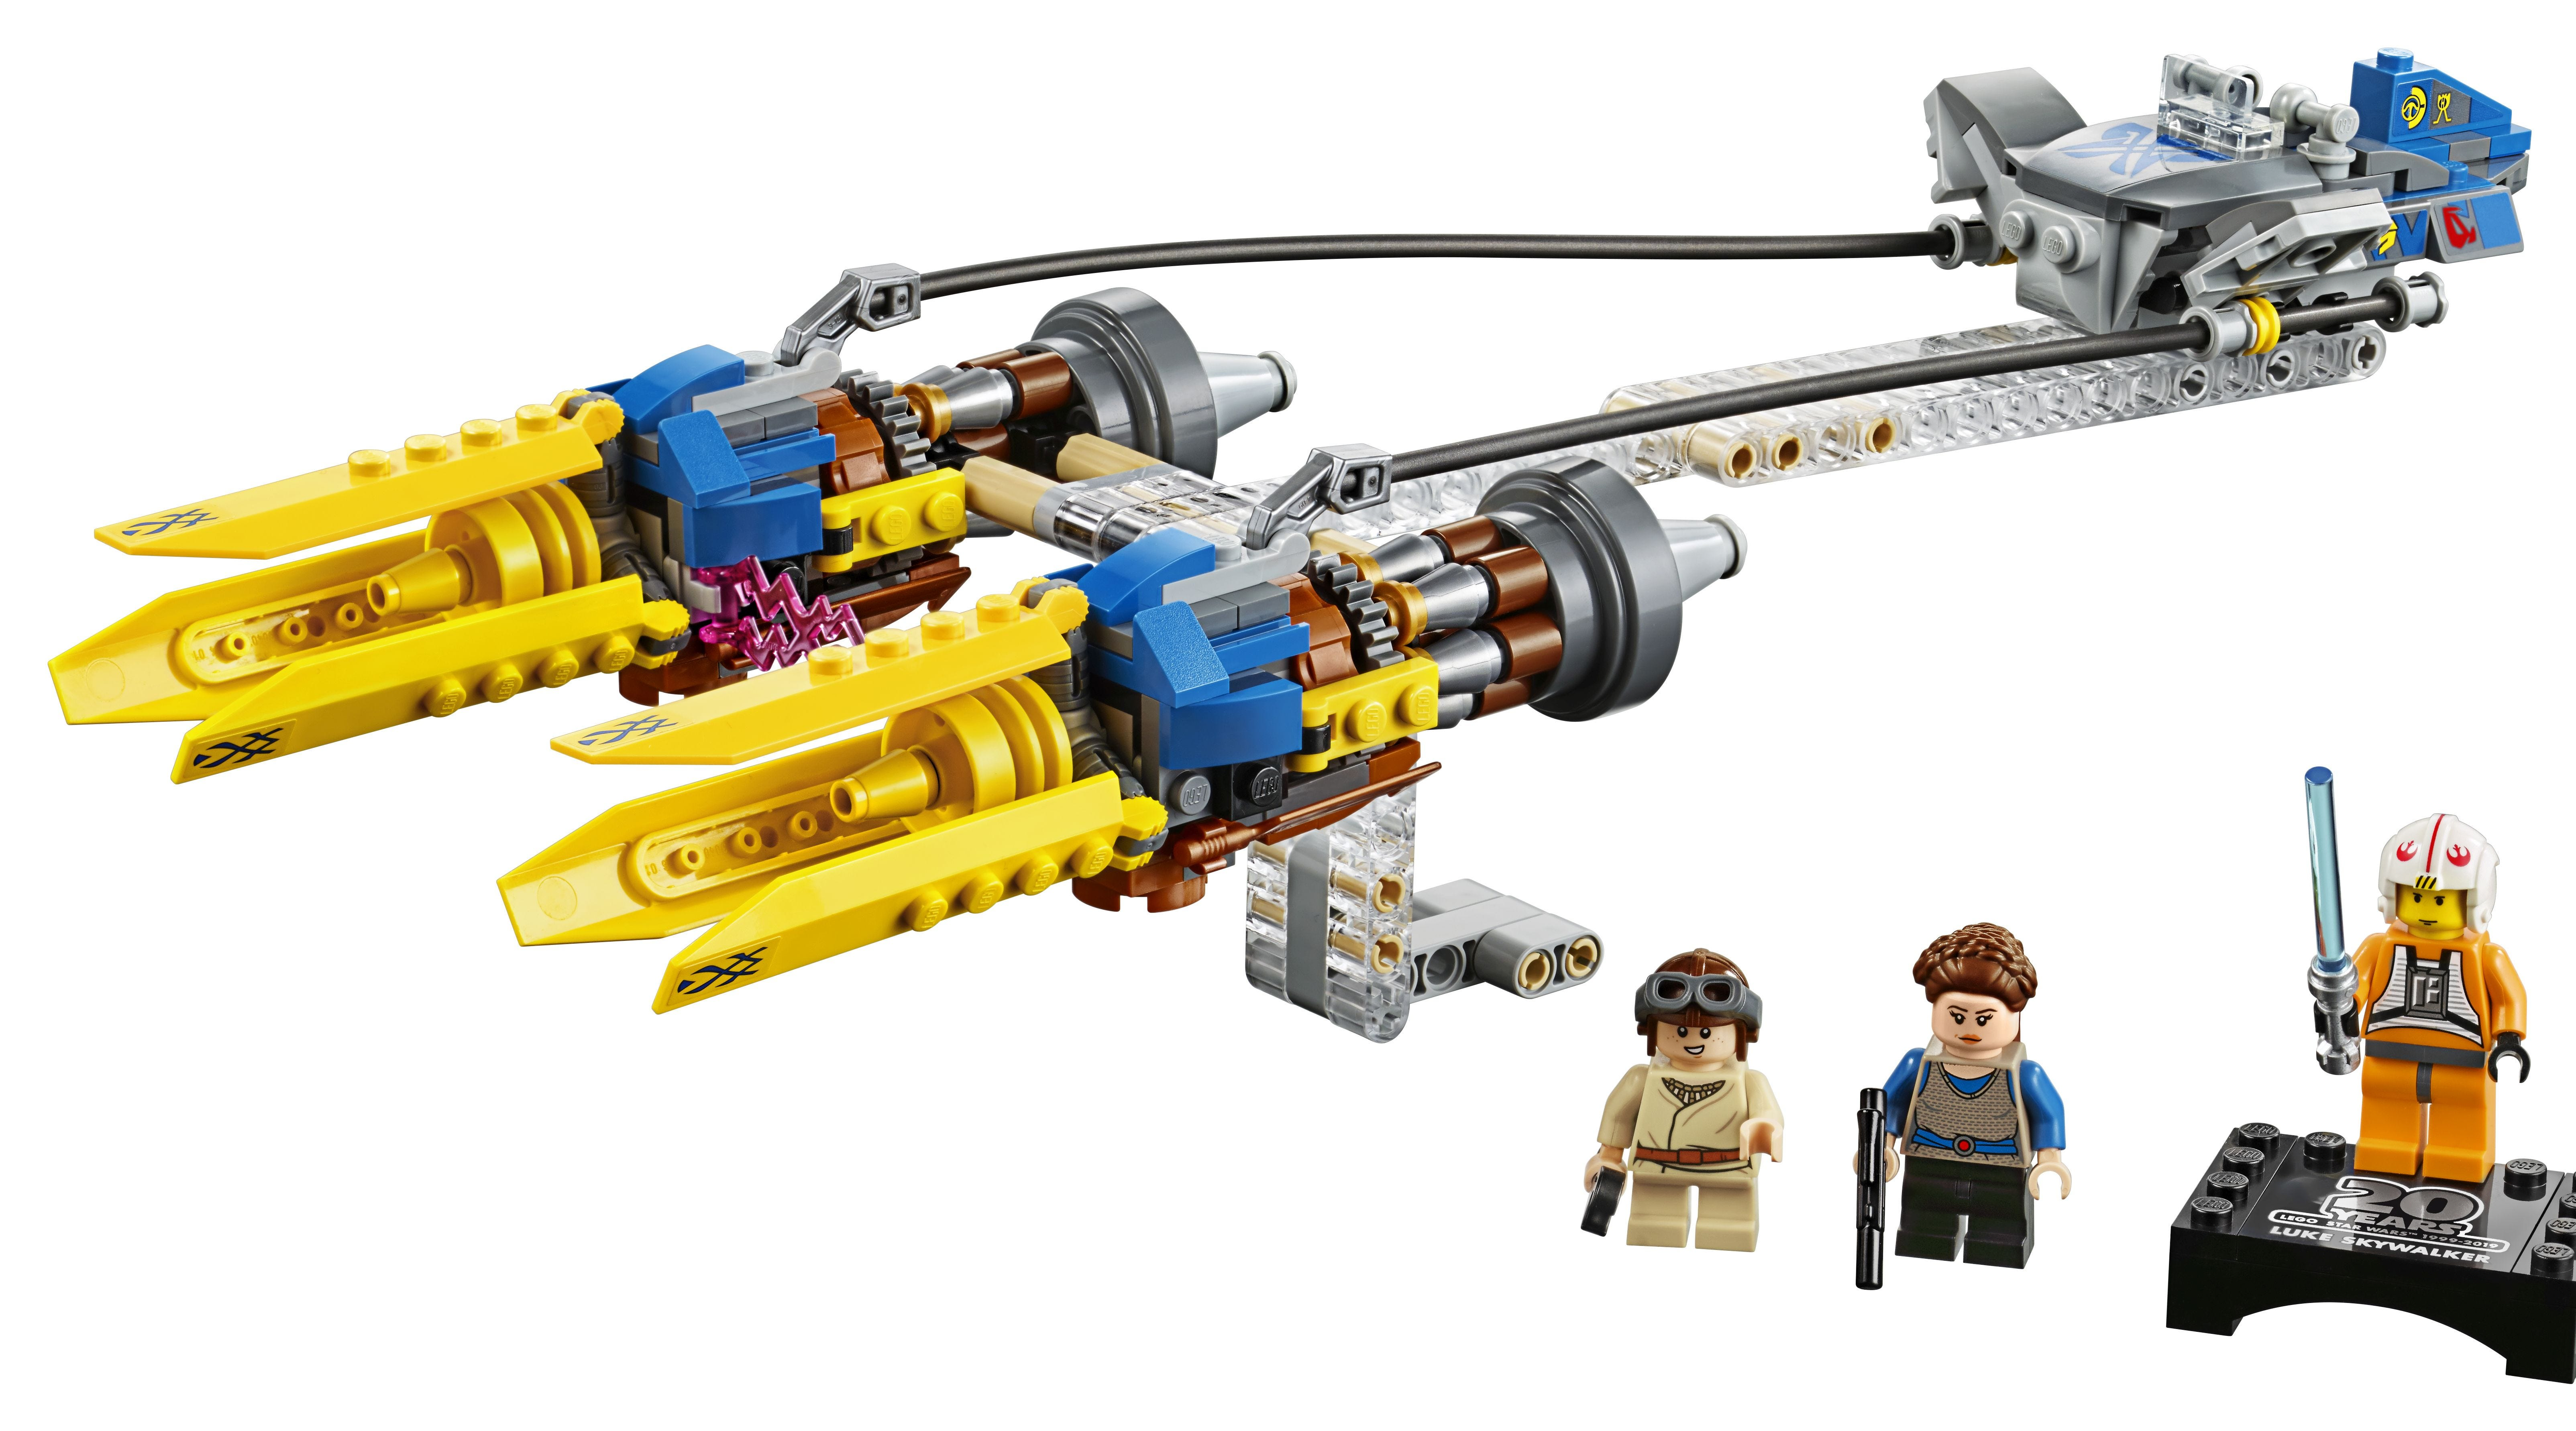 Star Wars fans, these are the limited-edition Lego sets you've been looking for